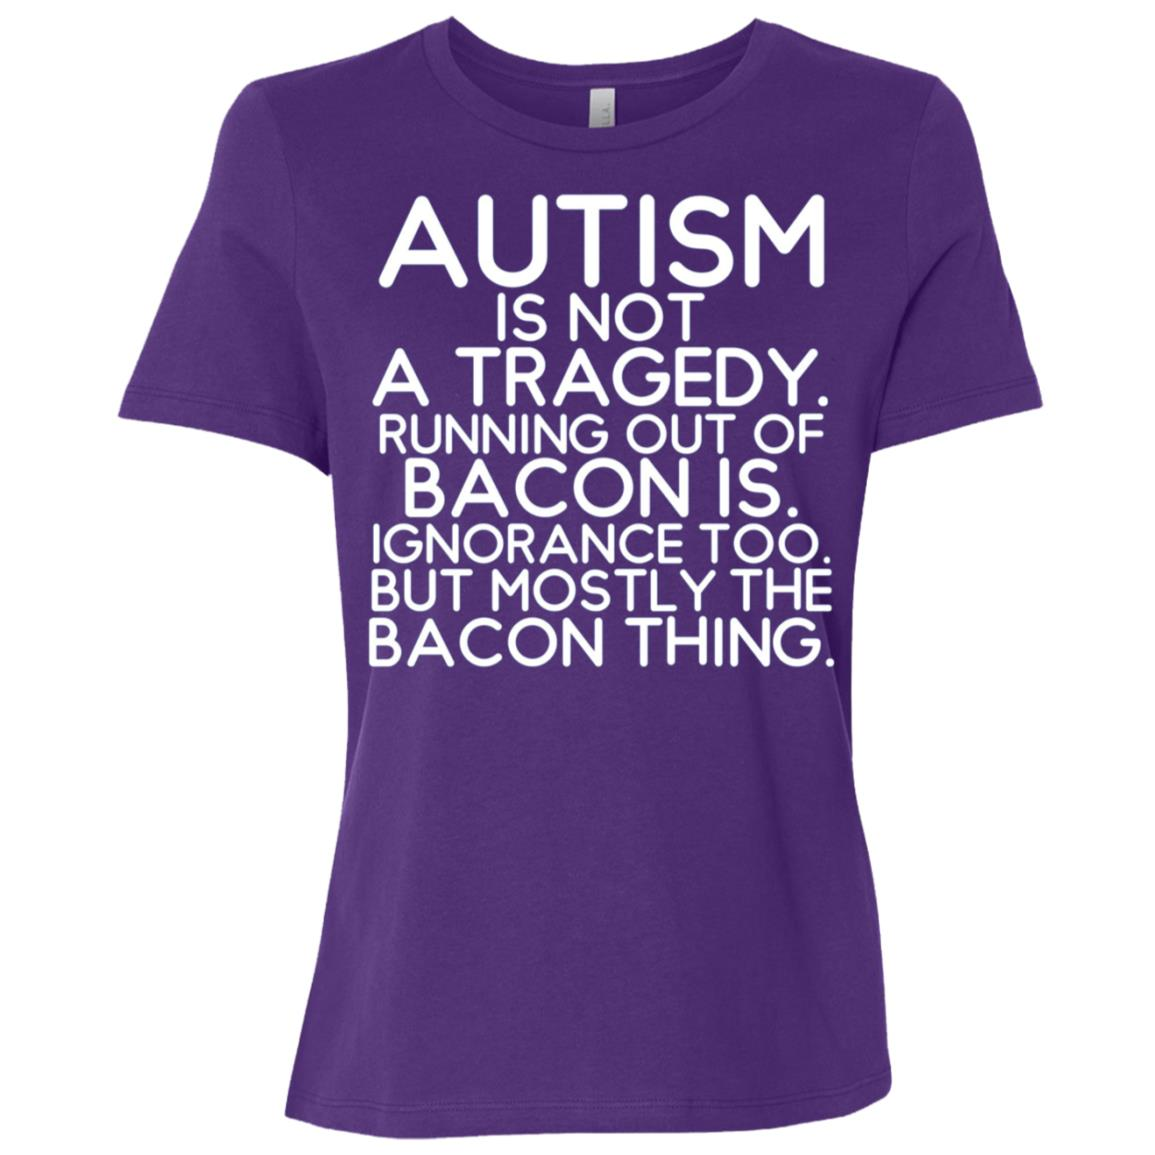 Autism Is Not a Tragedy No Bacon Is Funny Awareness Women Short Sleeve T-Shirt